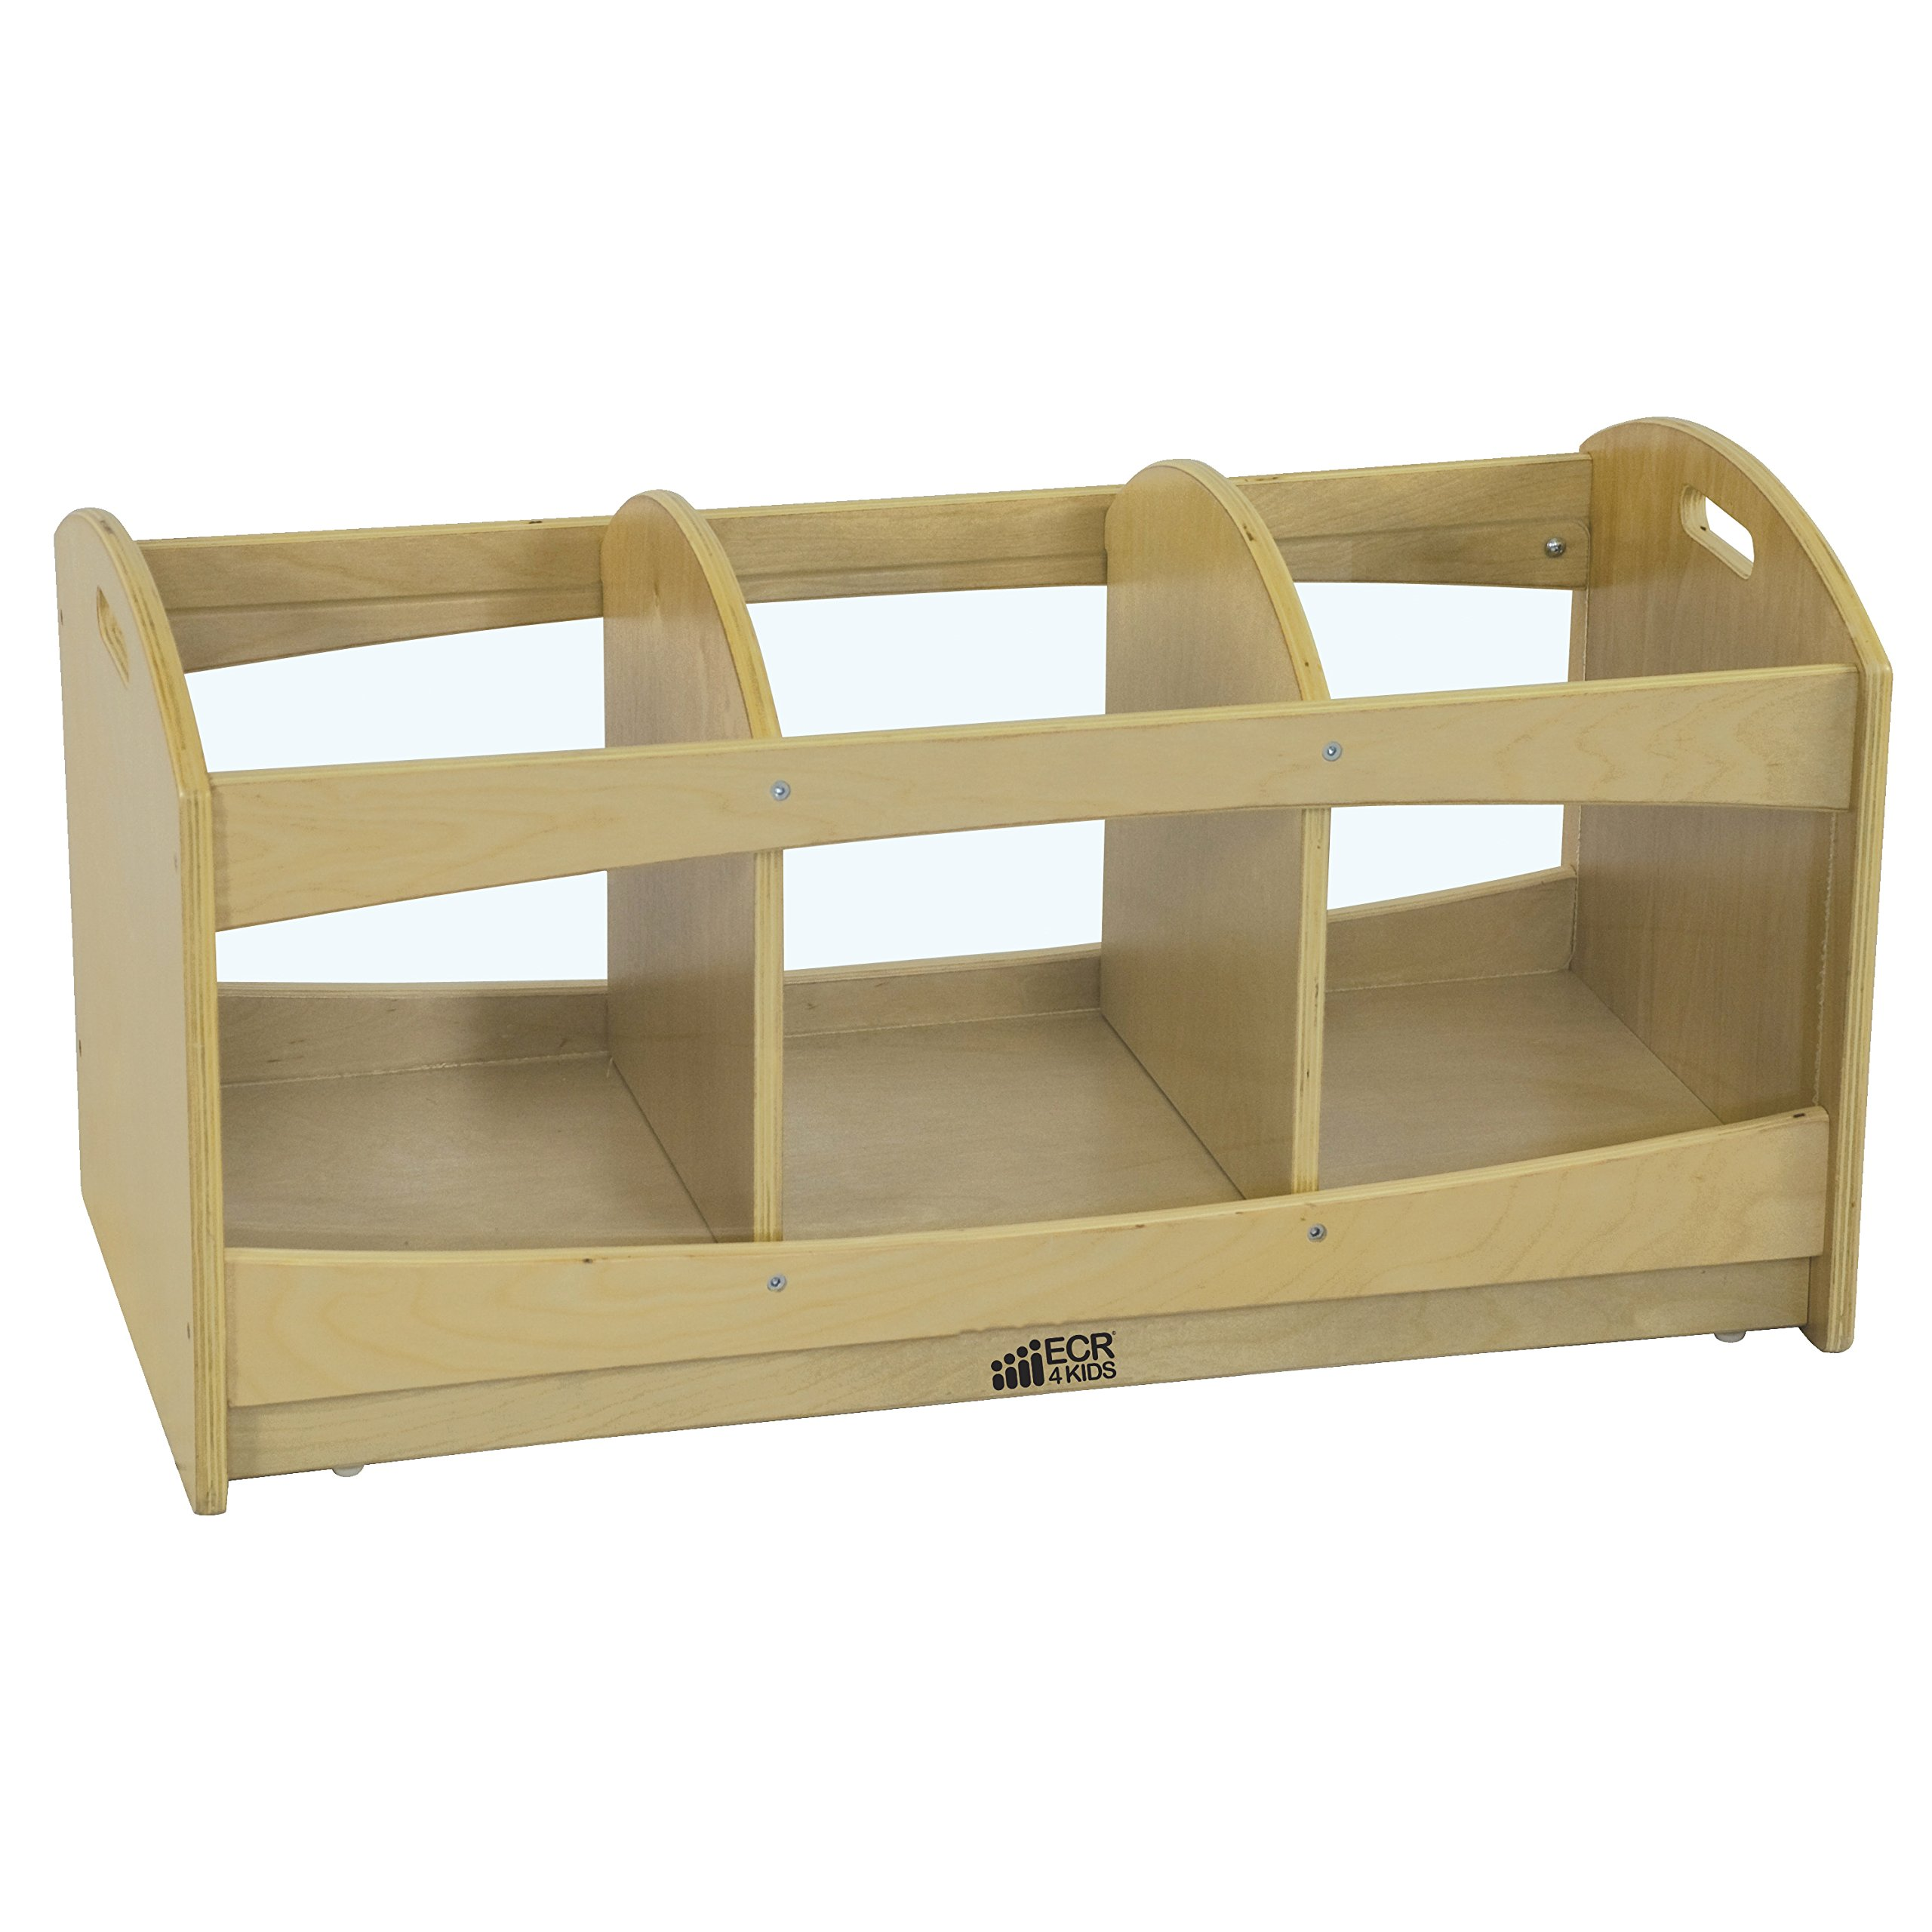 ECR4Kids Birch Play See Through 3 Compartment Storage Unit with Casters, Natural, 16'' H